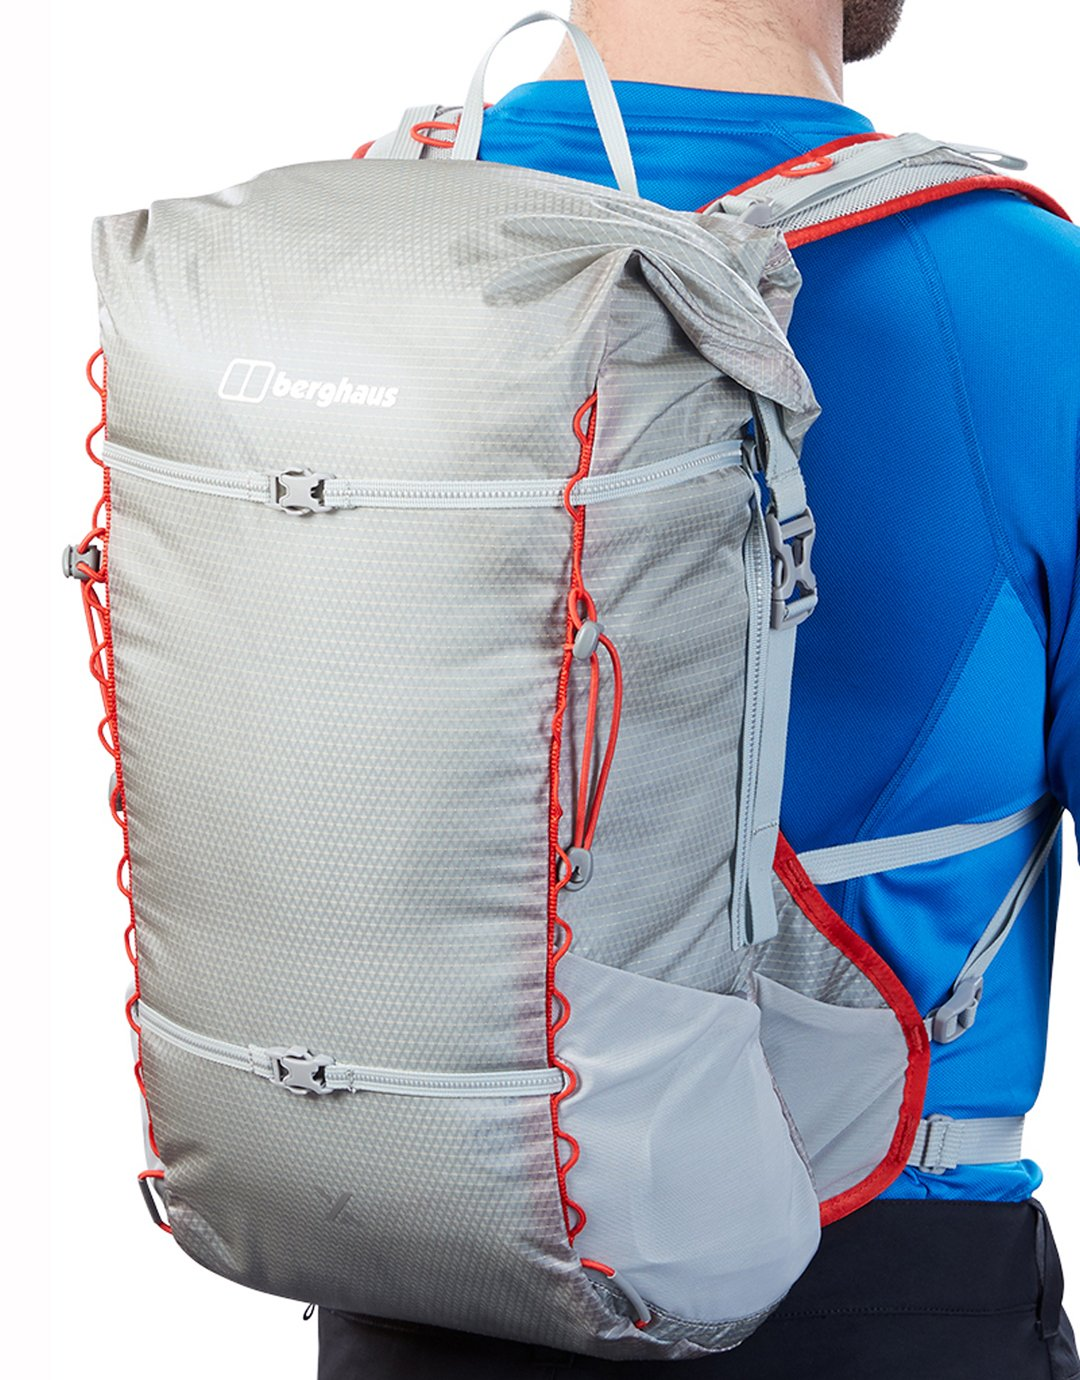 6b0c48c681ee Berghaus Mens Freeflow 40 Hiking Backpack